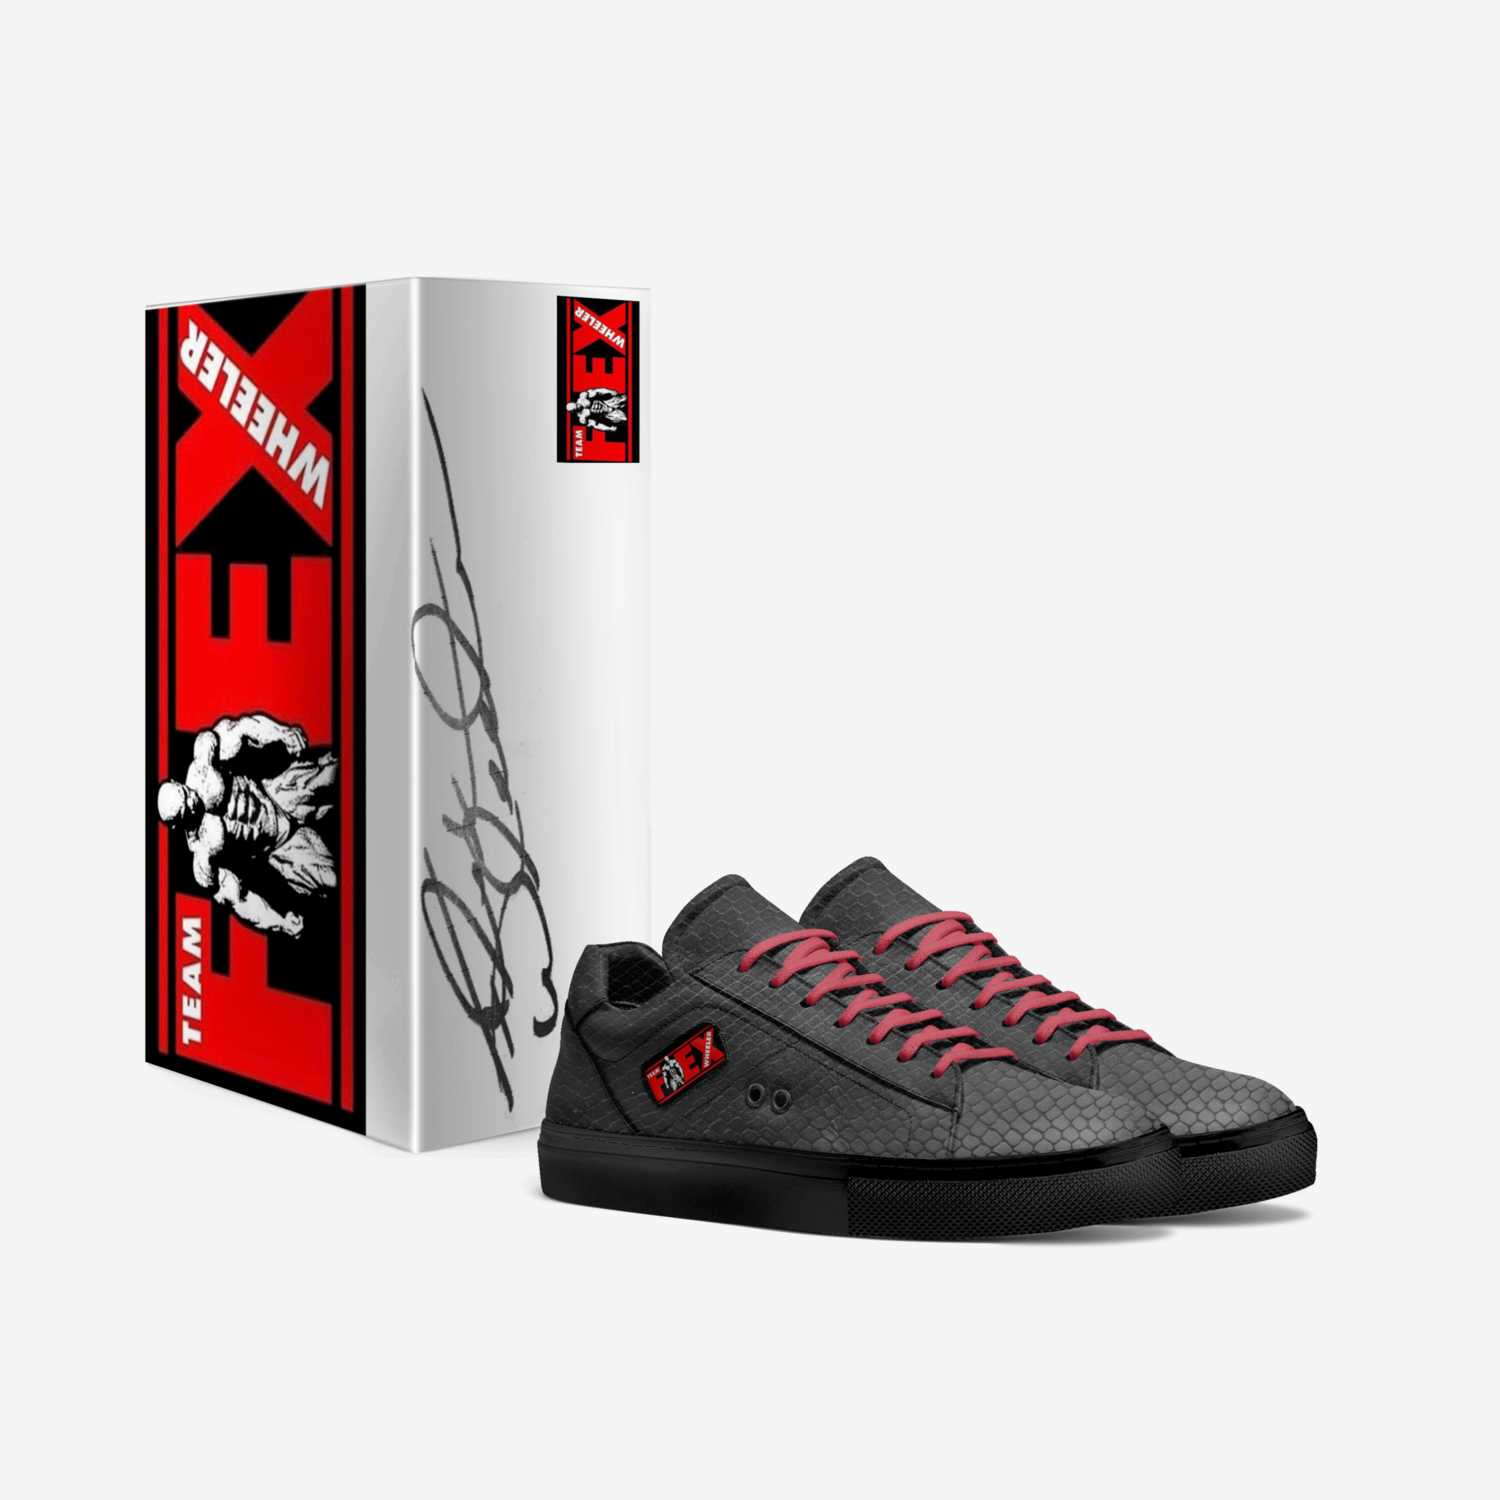 Flex Classic custom made in Italy shoes by Flex Wheeler | Box view